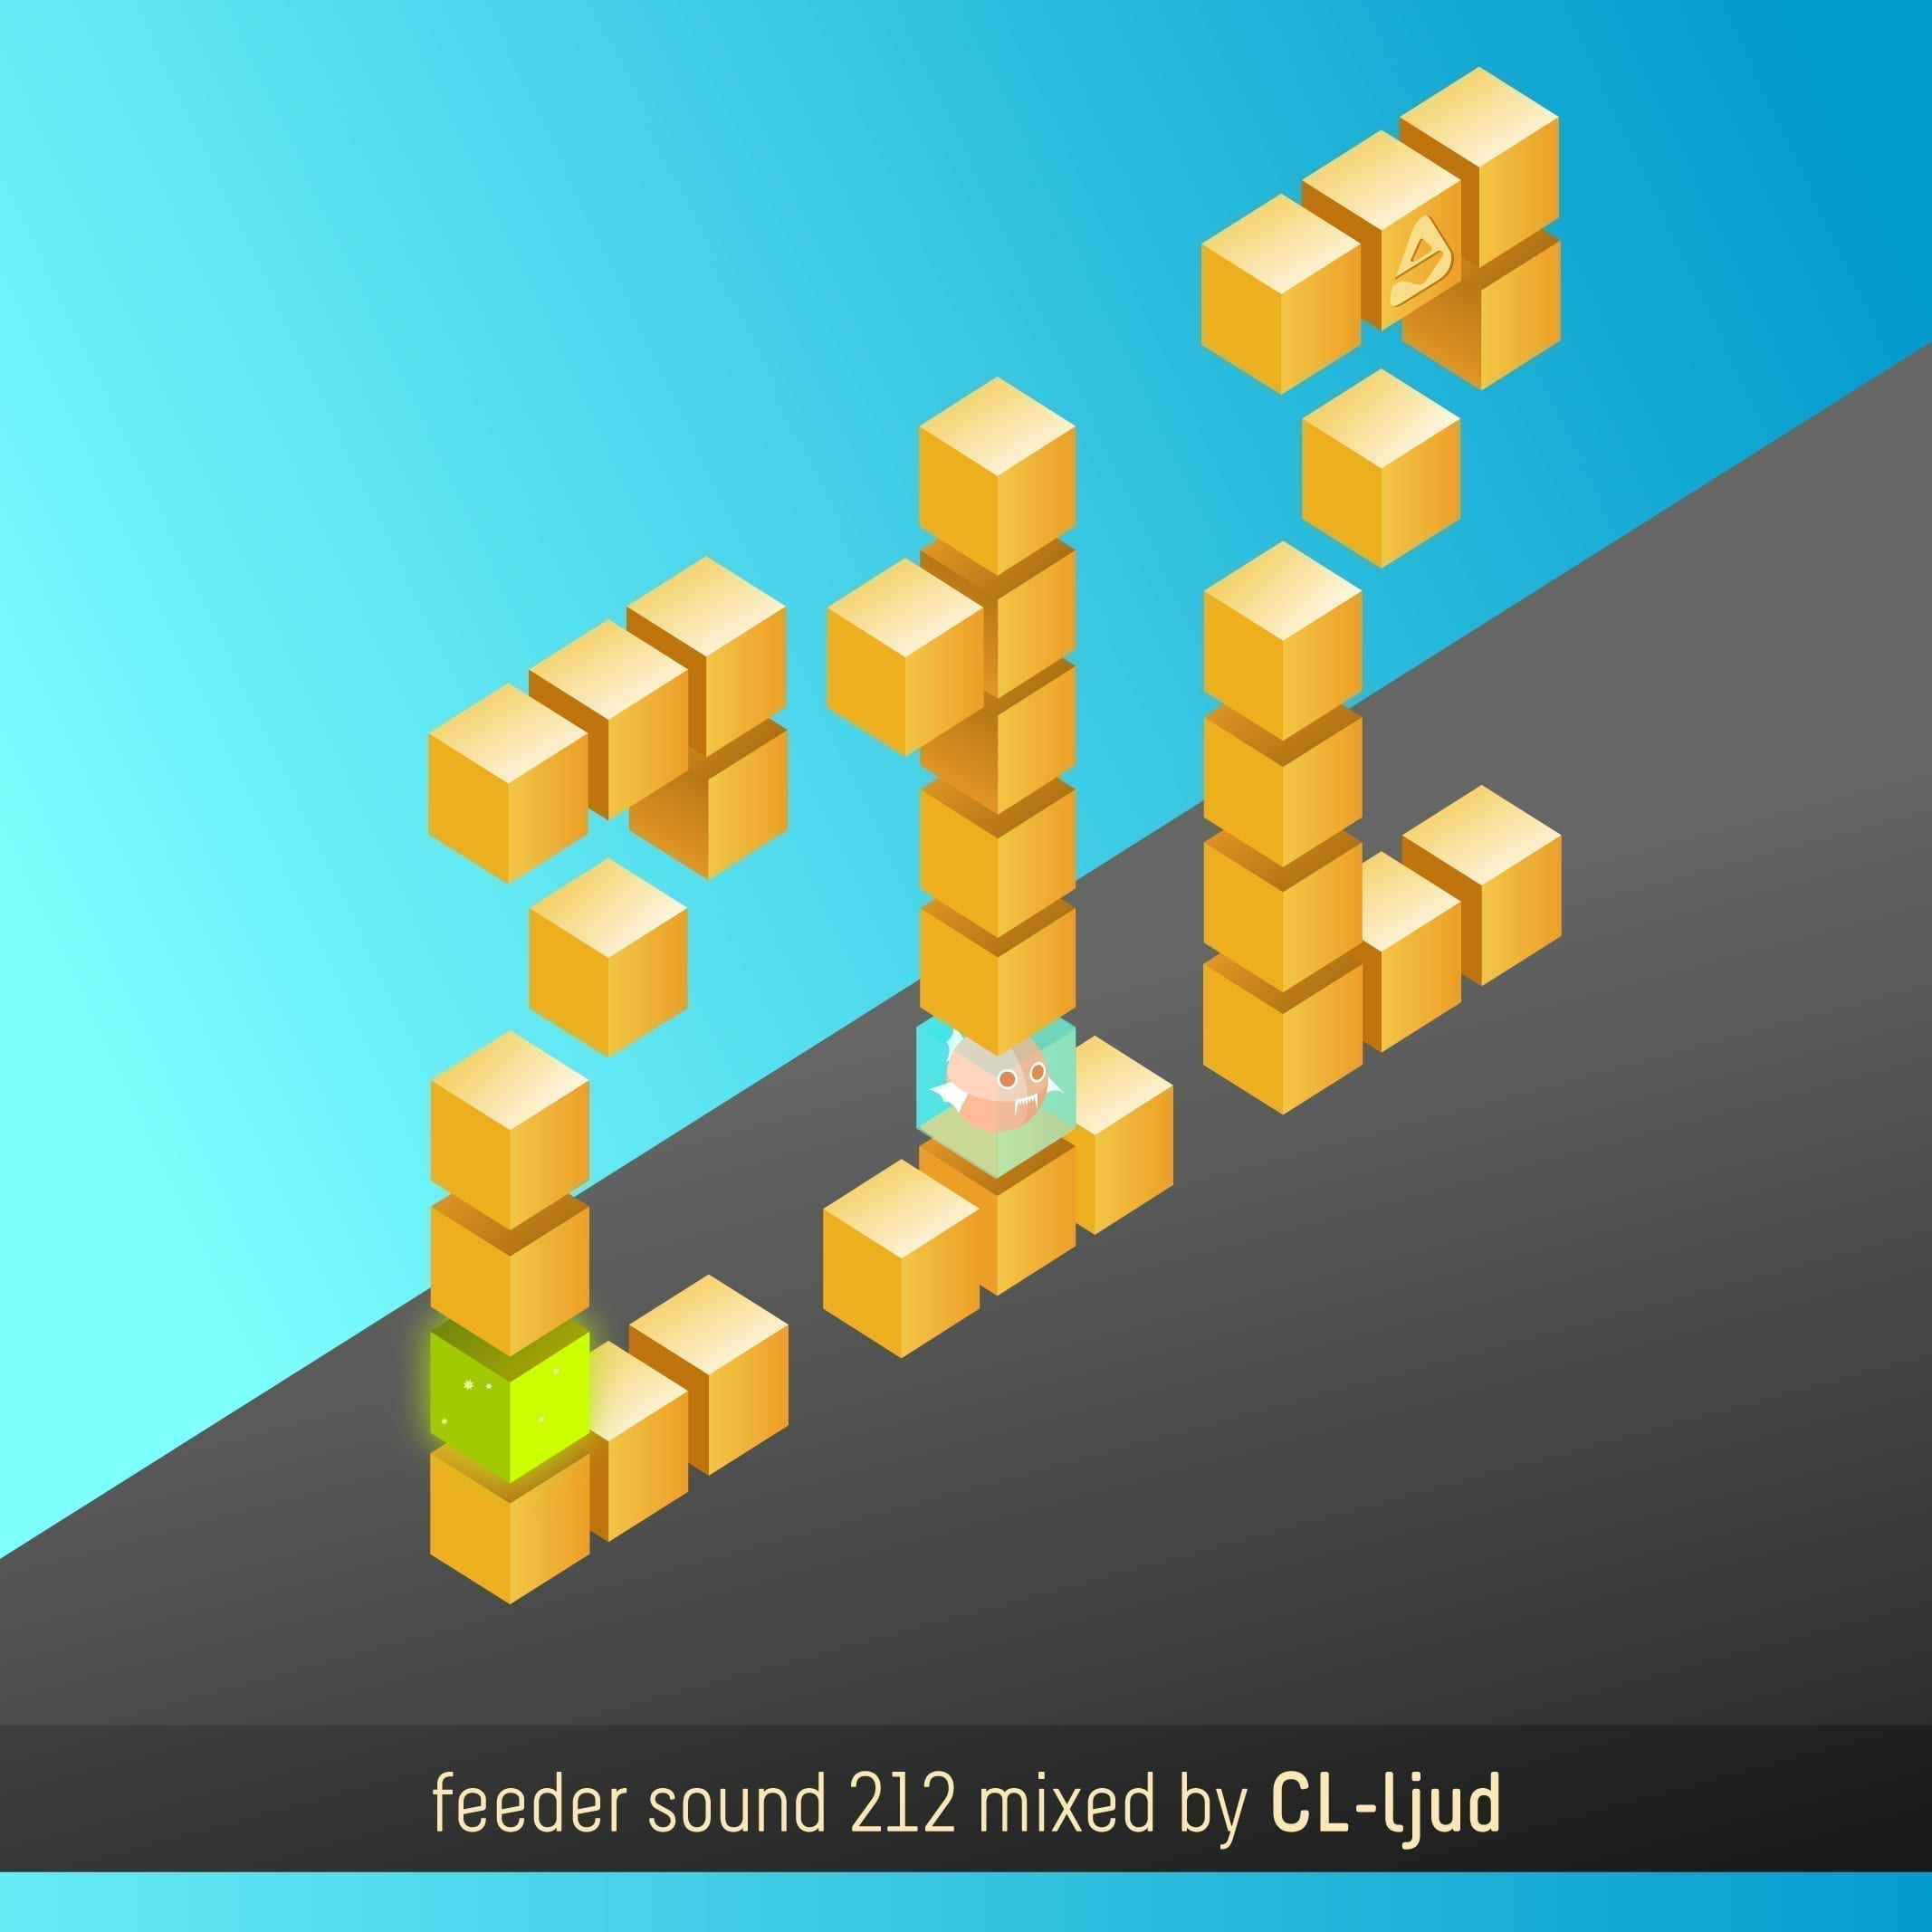 feeder sound 212 mixed by CL-ljud